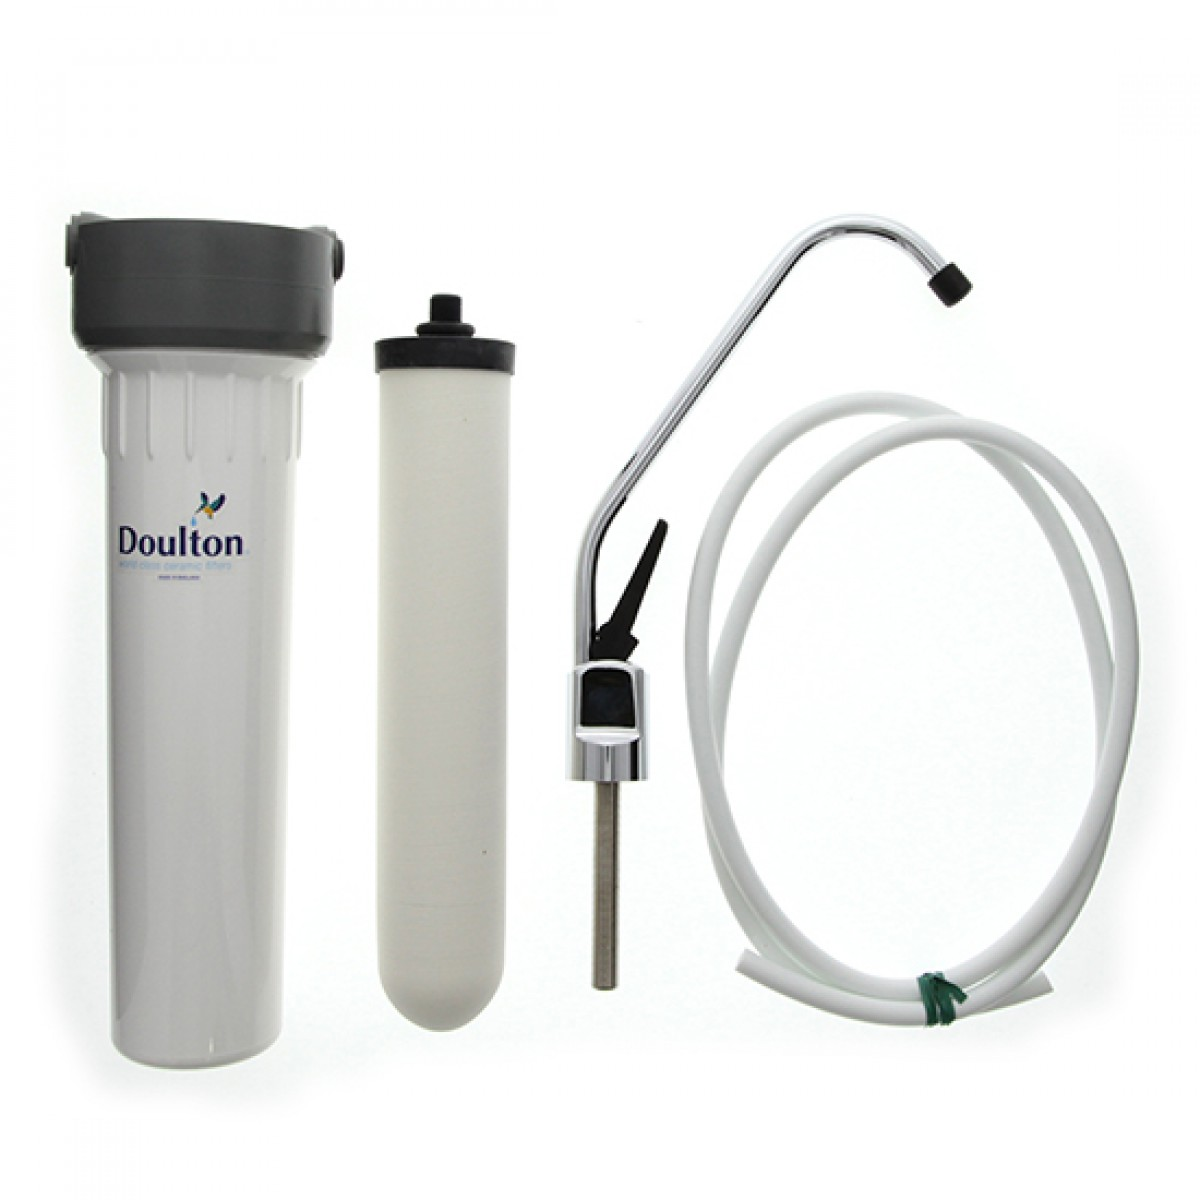 Doulton W9330958 Ultracarb Under Sink Filter System